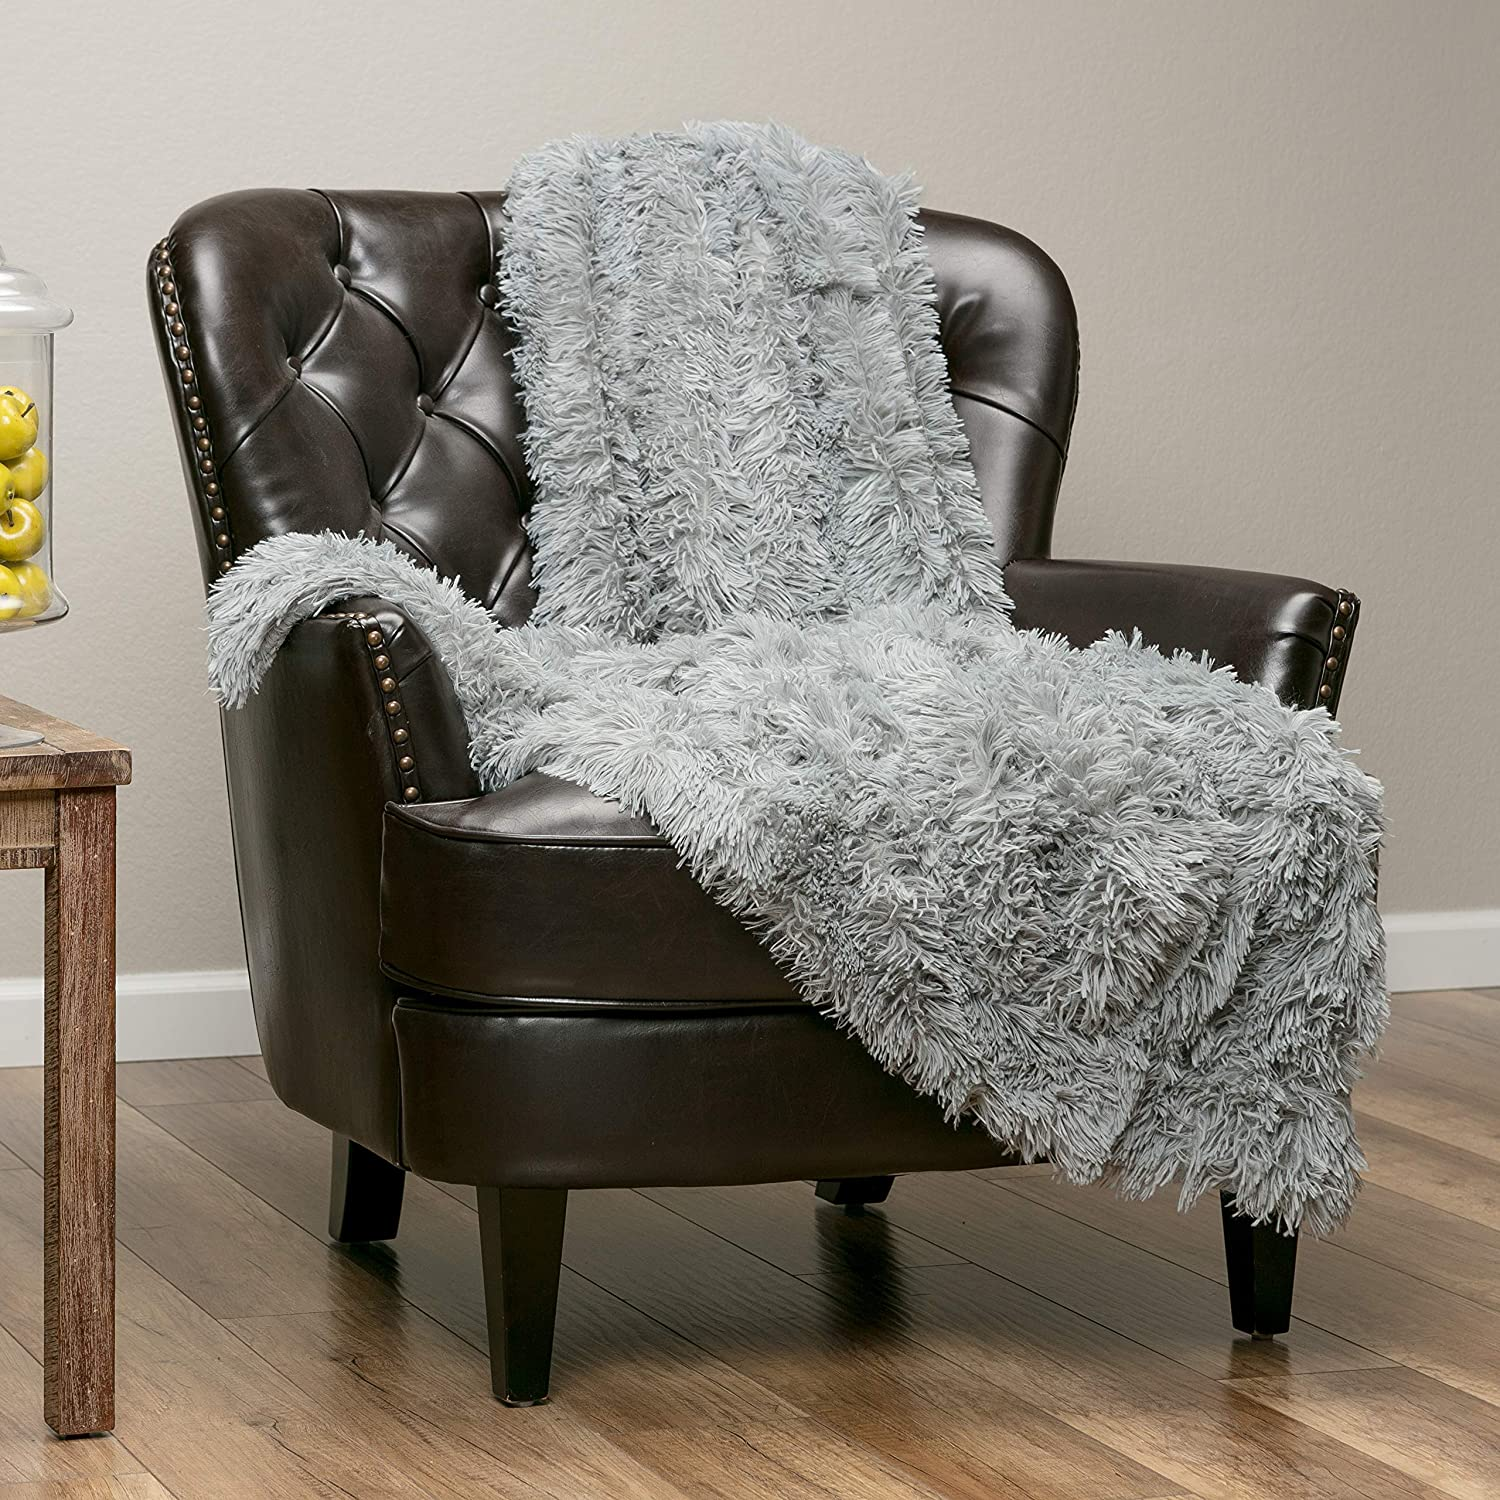 "Chanasya Super Soft Shaggy Longfur Throw Blanket | Snuggly Fuzzy Faux Fur Lightweight Warm Elegant Cozy Plush Sherpa Microfiber Blanket | for Couch Bed Chair Photo Props - 50""x 65"" - Grey"